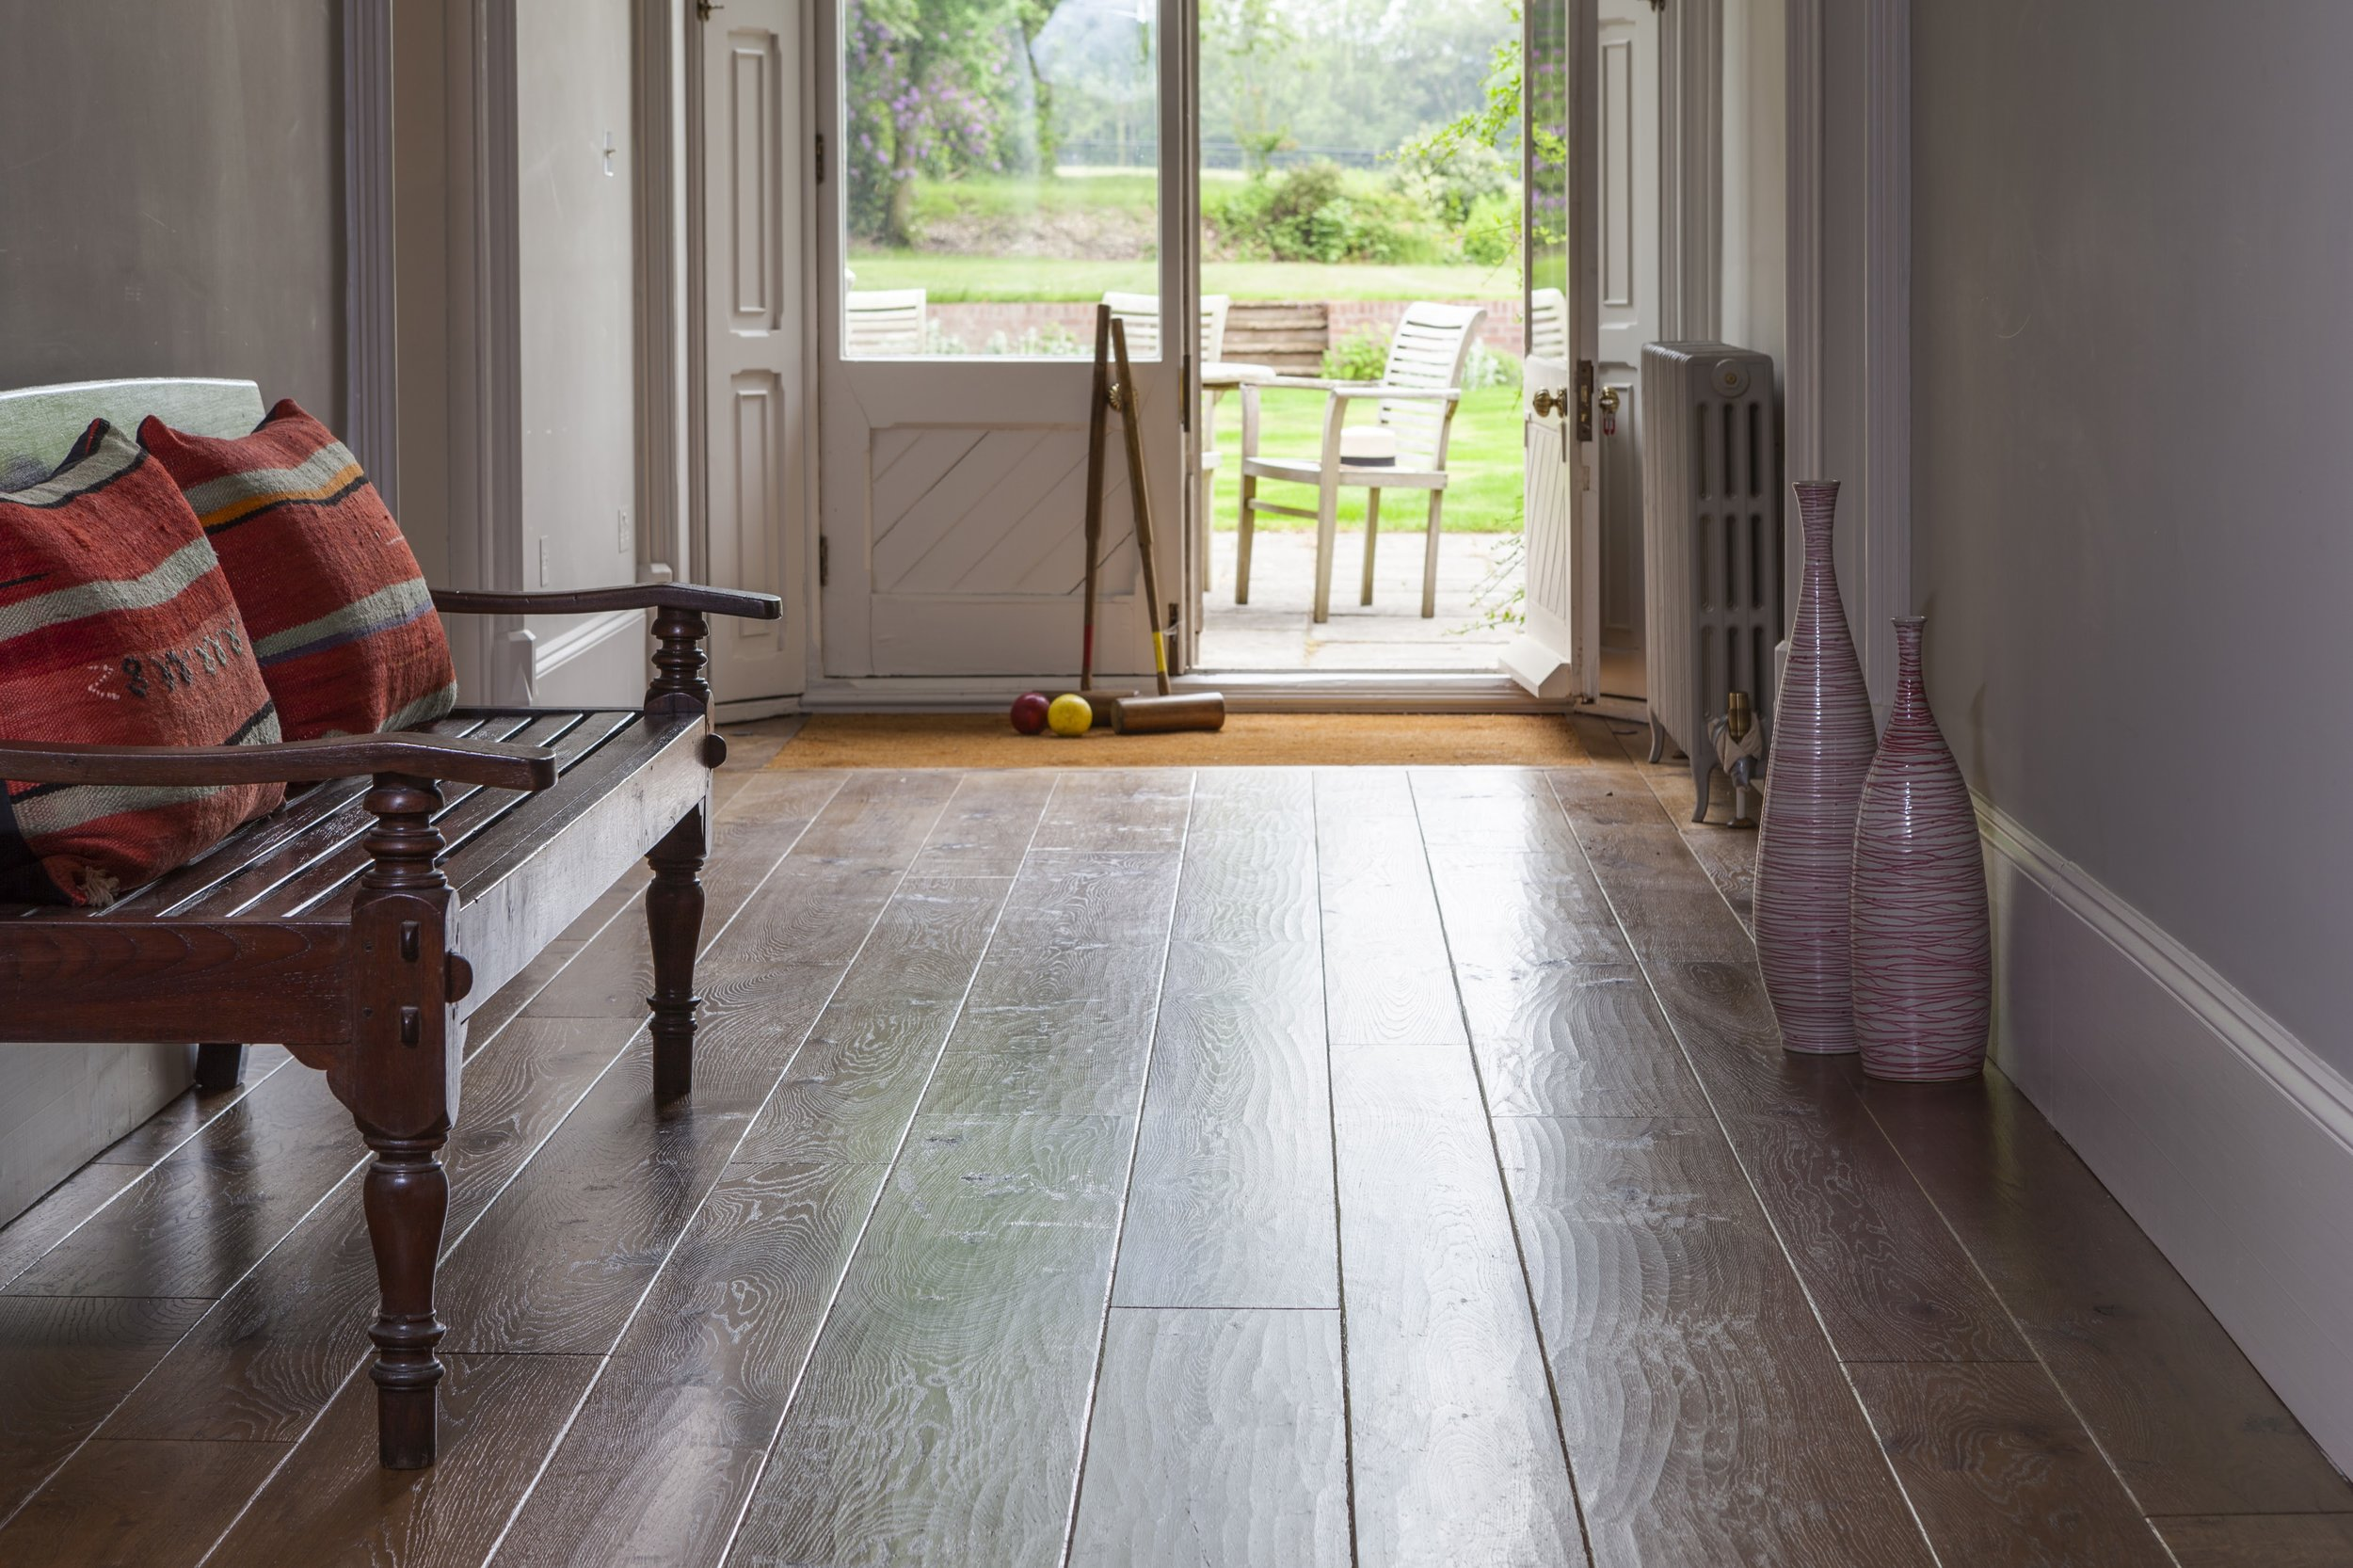 bench in passage Generations wide boards traditional flooring.jpg